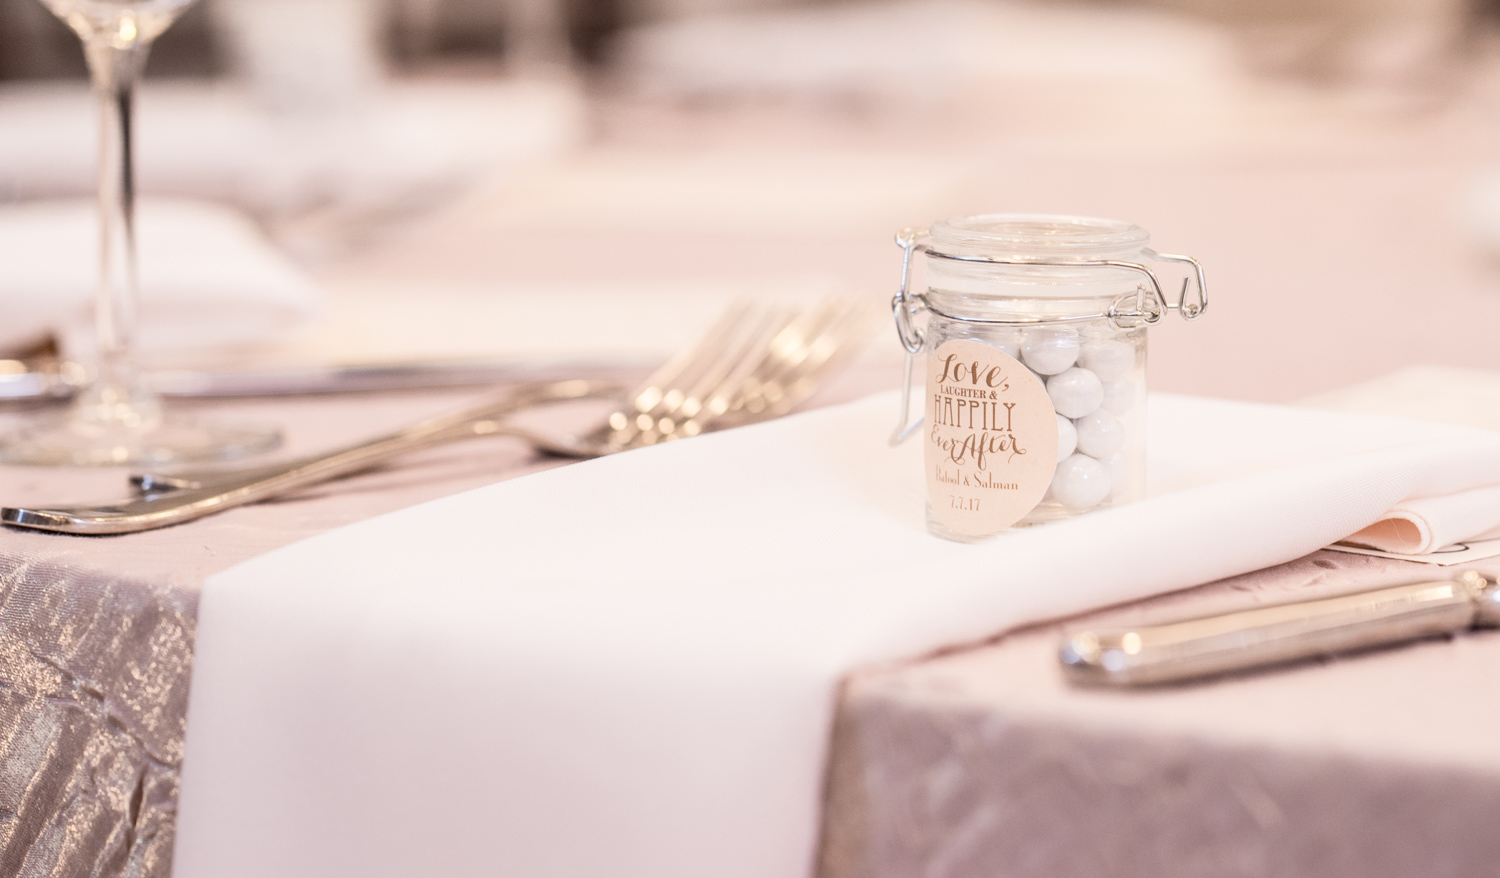 Love, Laughter, Happily ever after table decor picture.